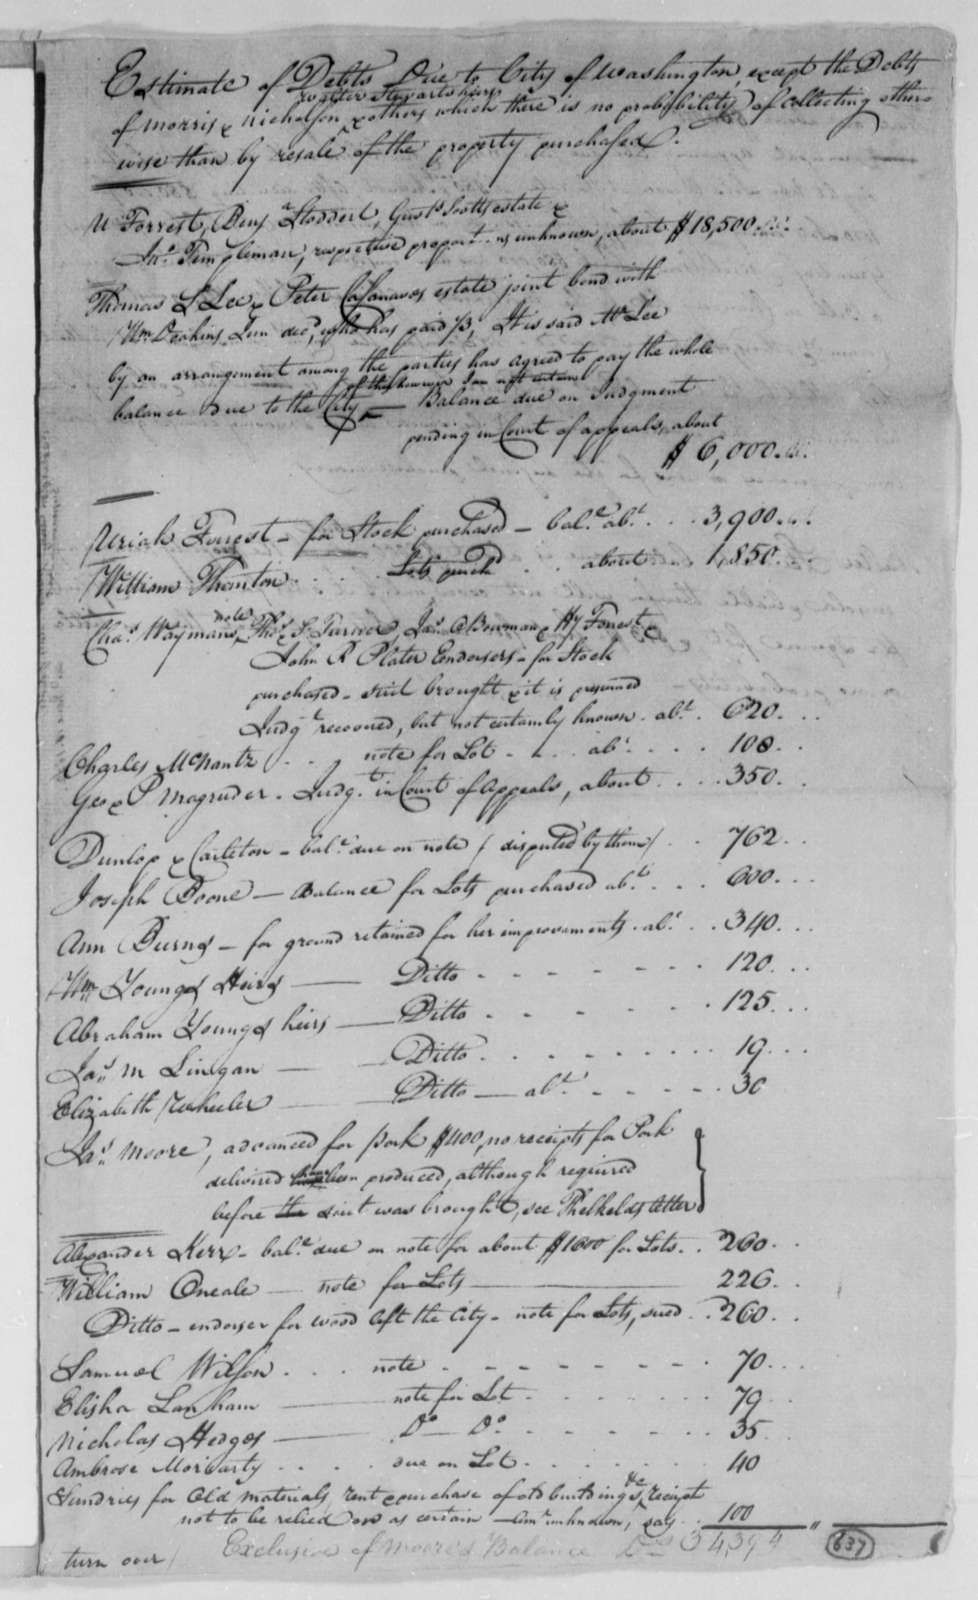 Thomas Munroe, Superintendent of the City to Thomas Jefferson, 1802, Financial Statement, Washington, D.C.